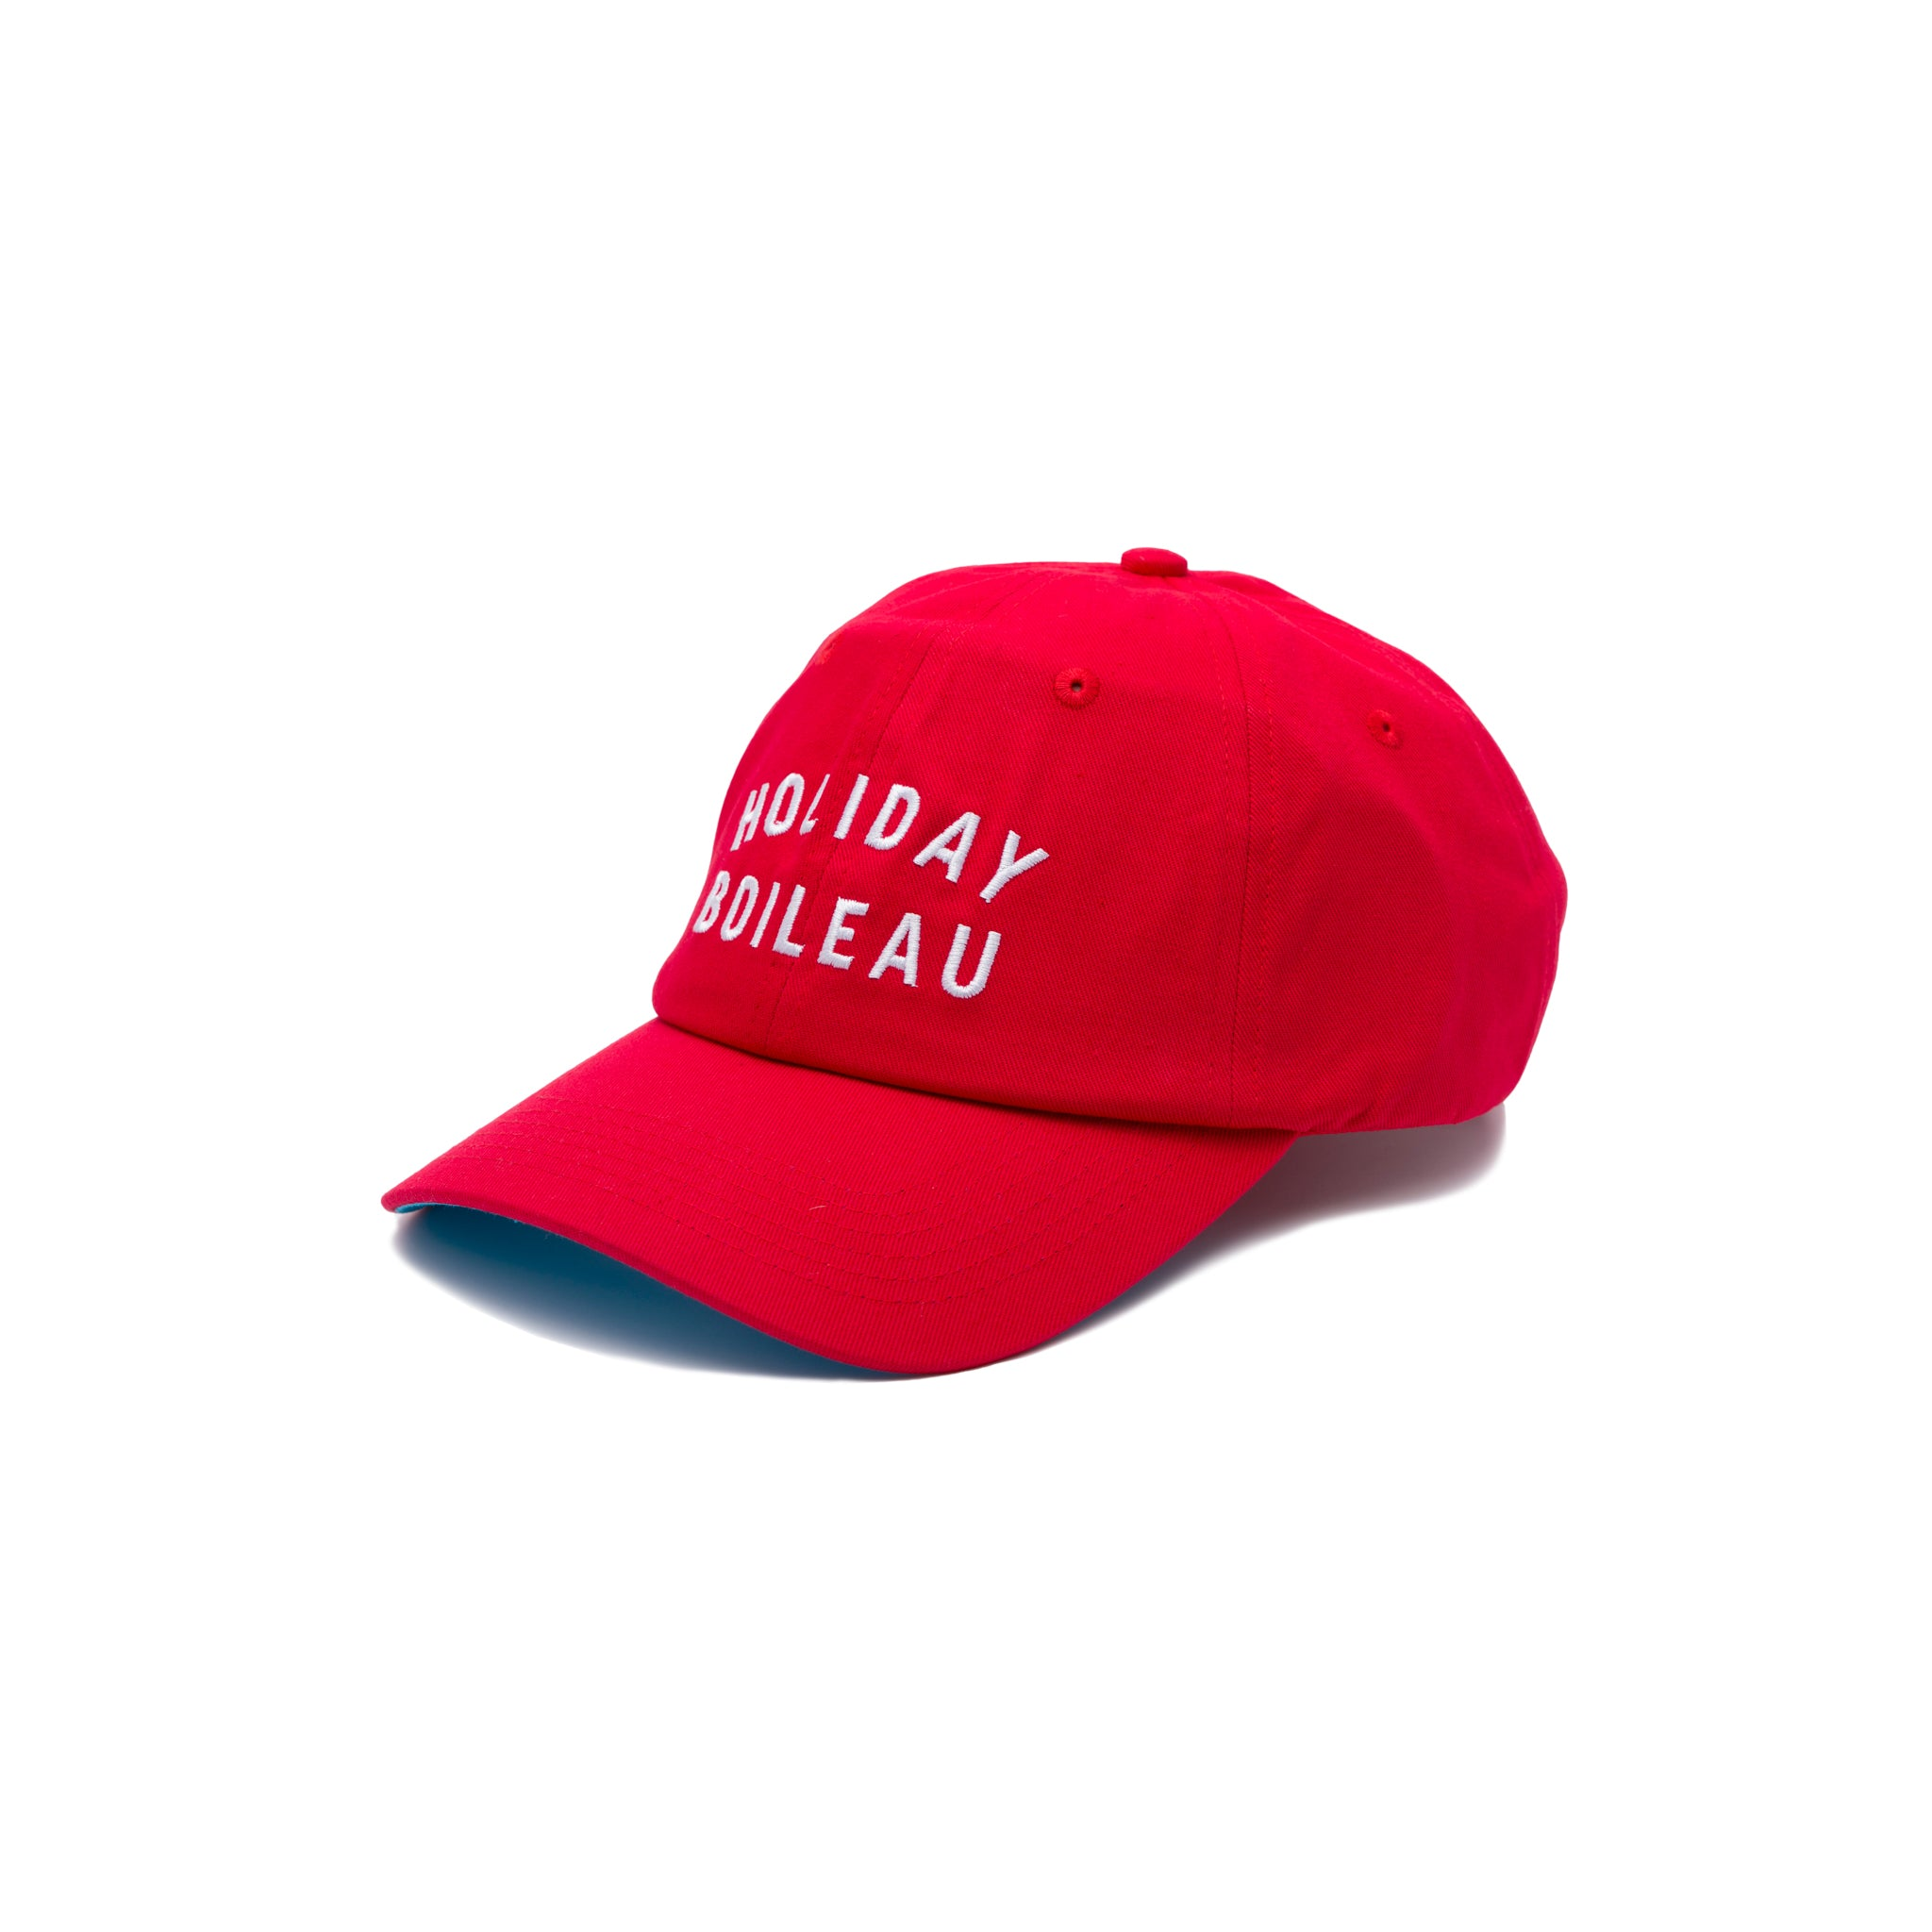 The Fun Red Cap